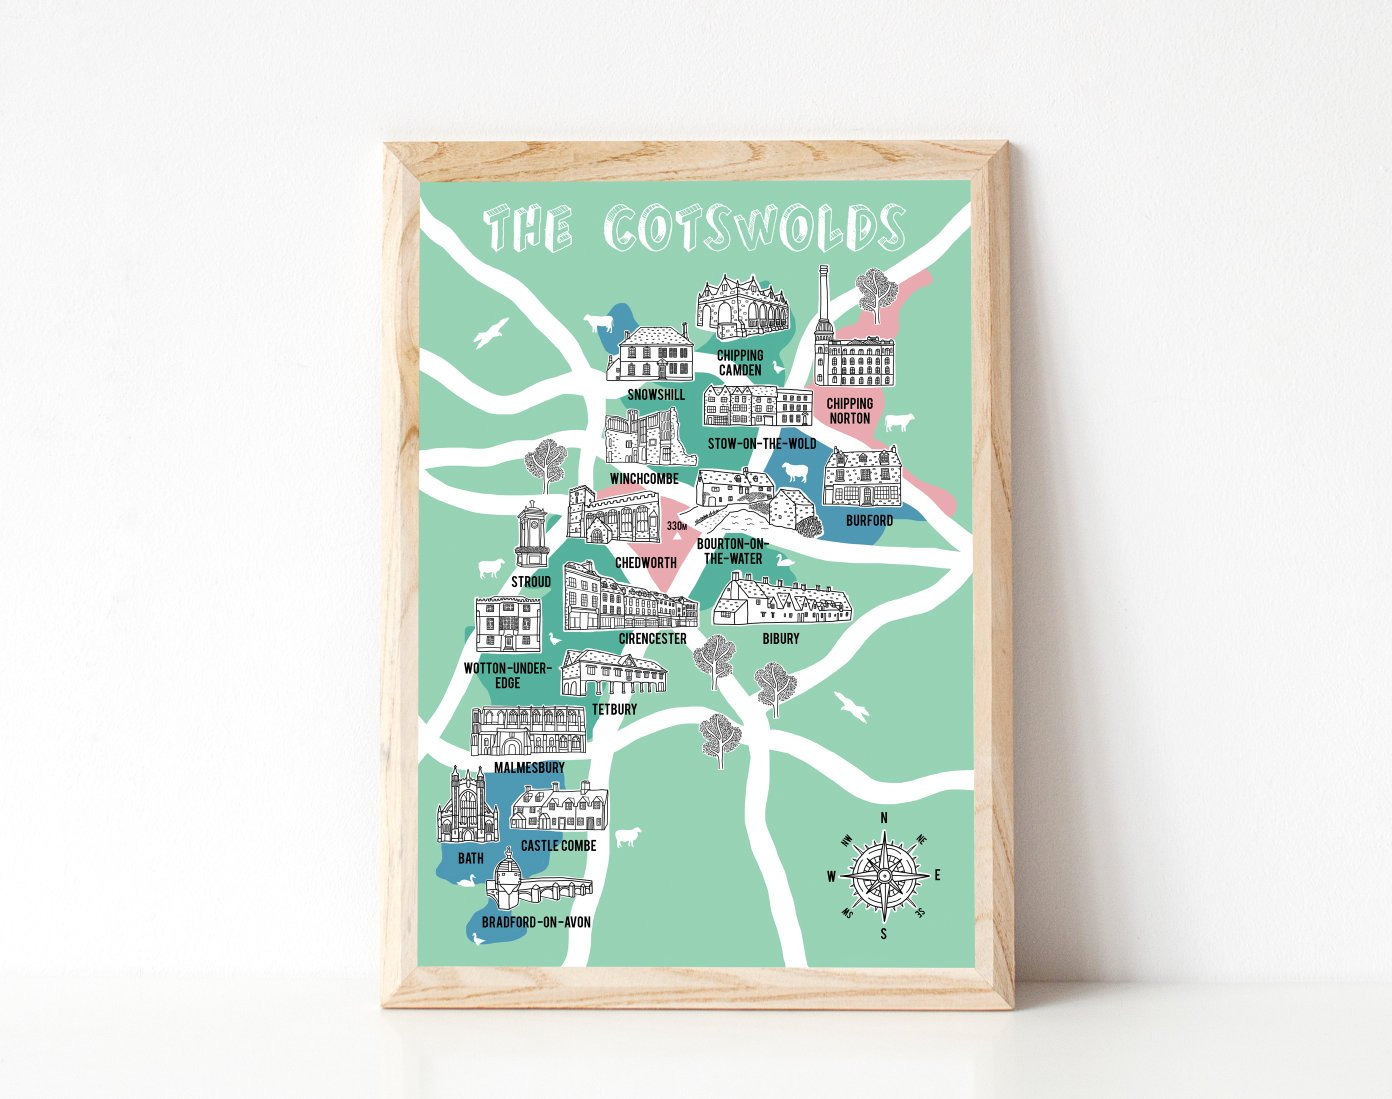 Cotswolds map, Cotswold gifts, Map illustration, County Map, Map Gift,  Cotswold Art, The Cotswolds, new home gift, hand drawn map, handmade